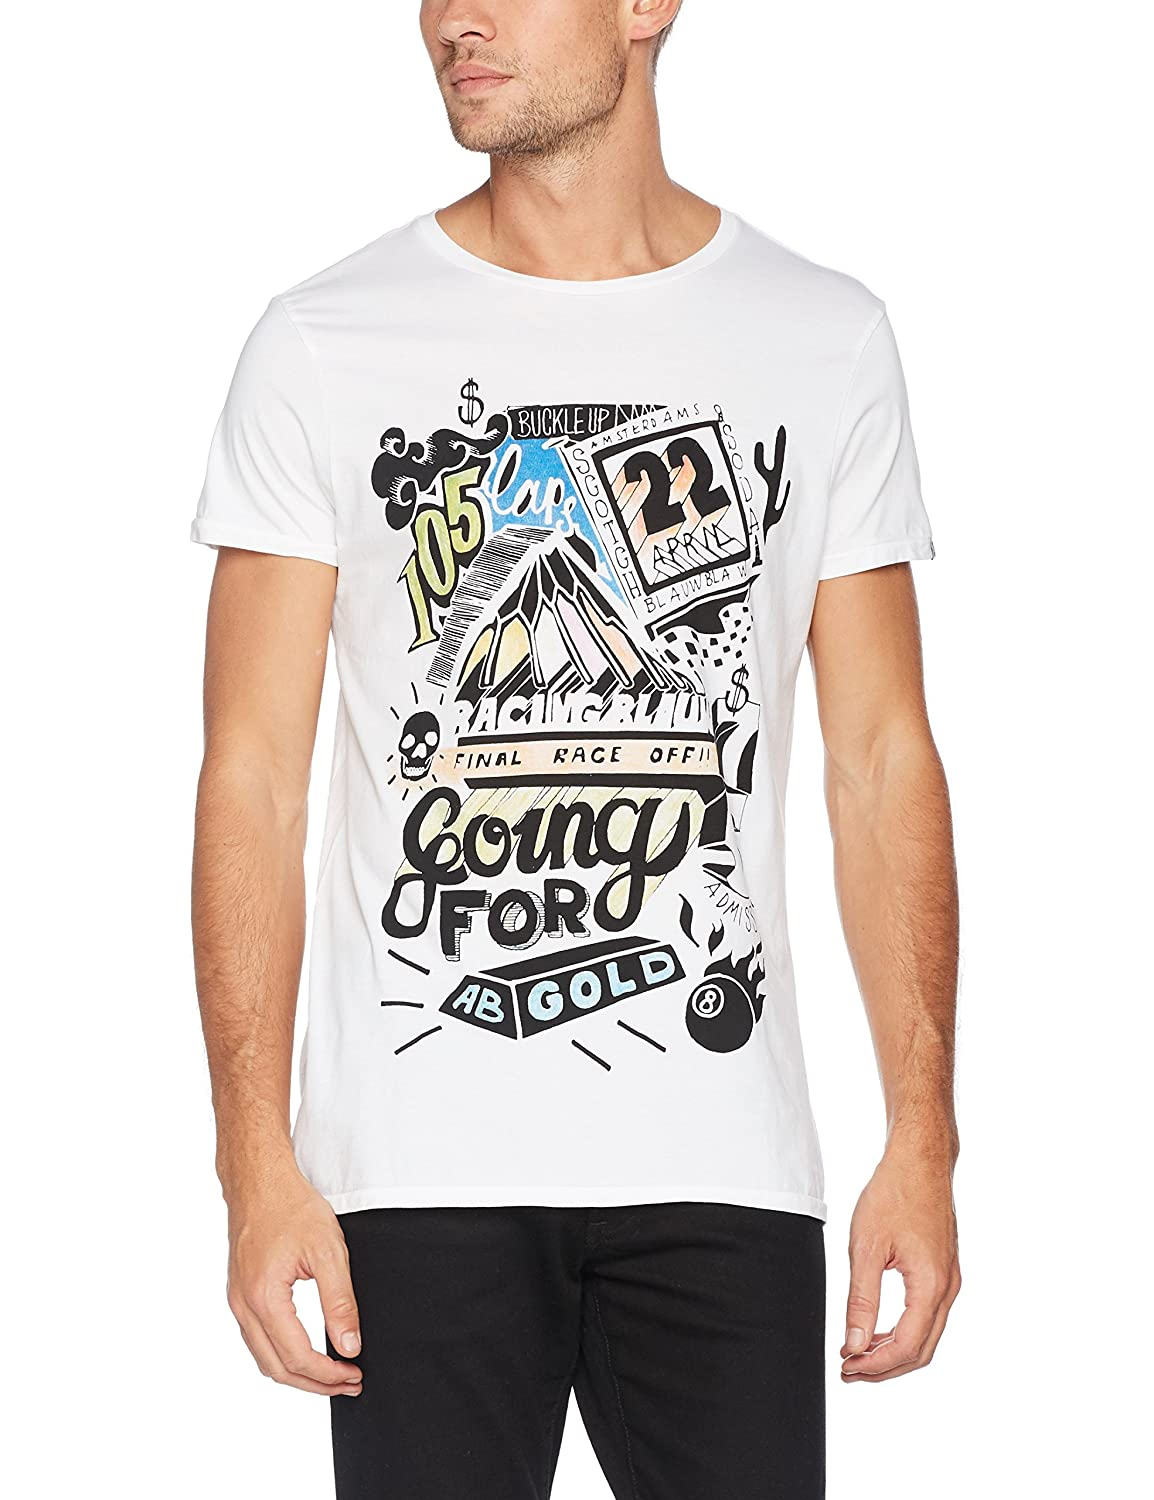 Scotch & Soda Men's AMS Blauw Hotel Graphic Tee with Long Line Twisted Fit T -Shirt: Amazon.co.uk: Clothing